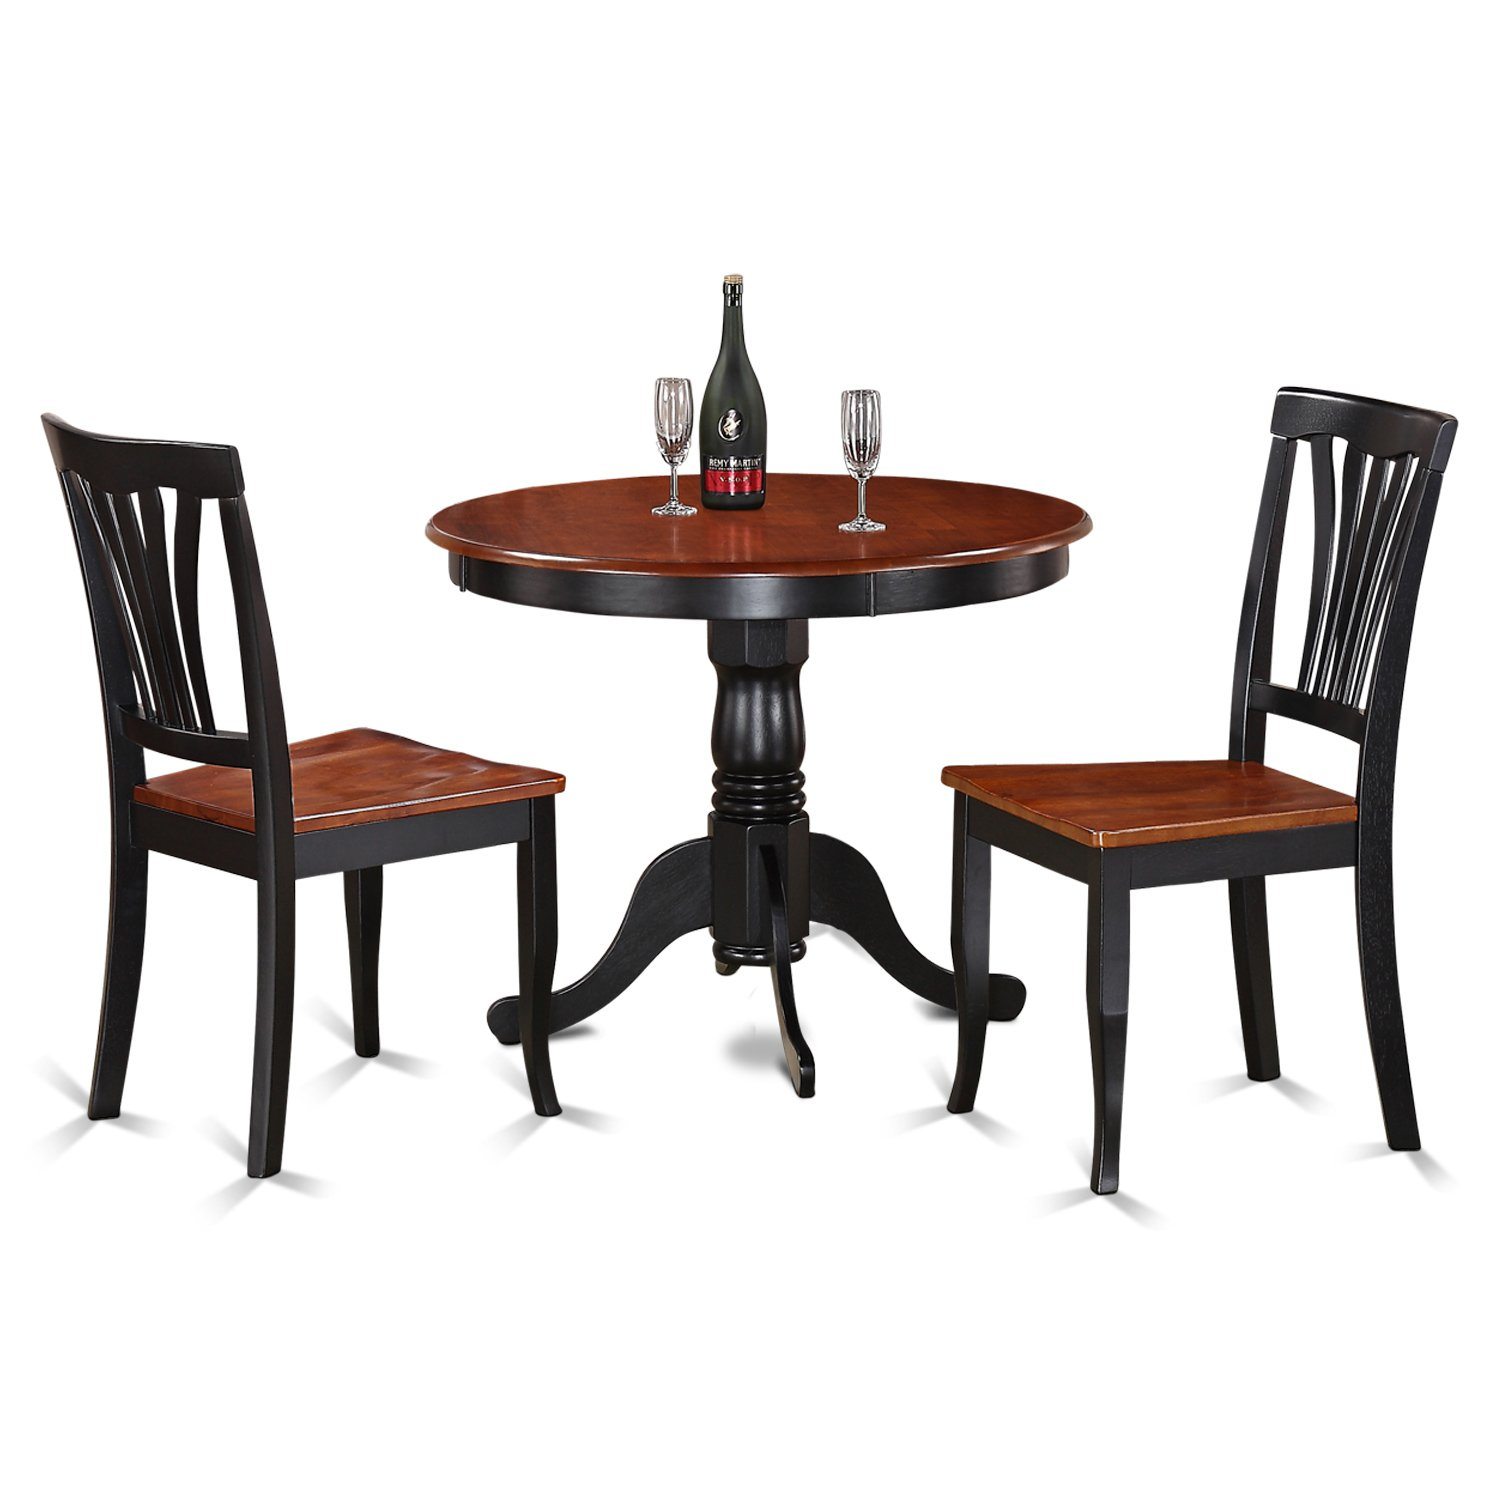 East West Furniture ANAV3-BLK-W 3-Piece Kitchen Nook Dining Table Set, Black/Cherry Finish by East West Furniture